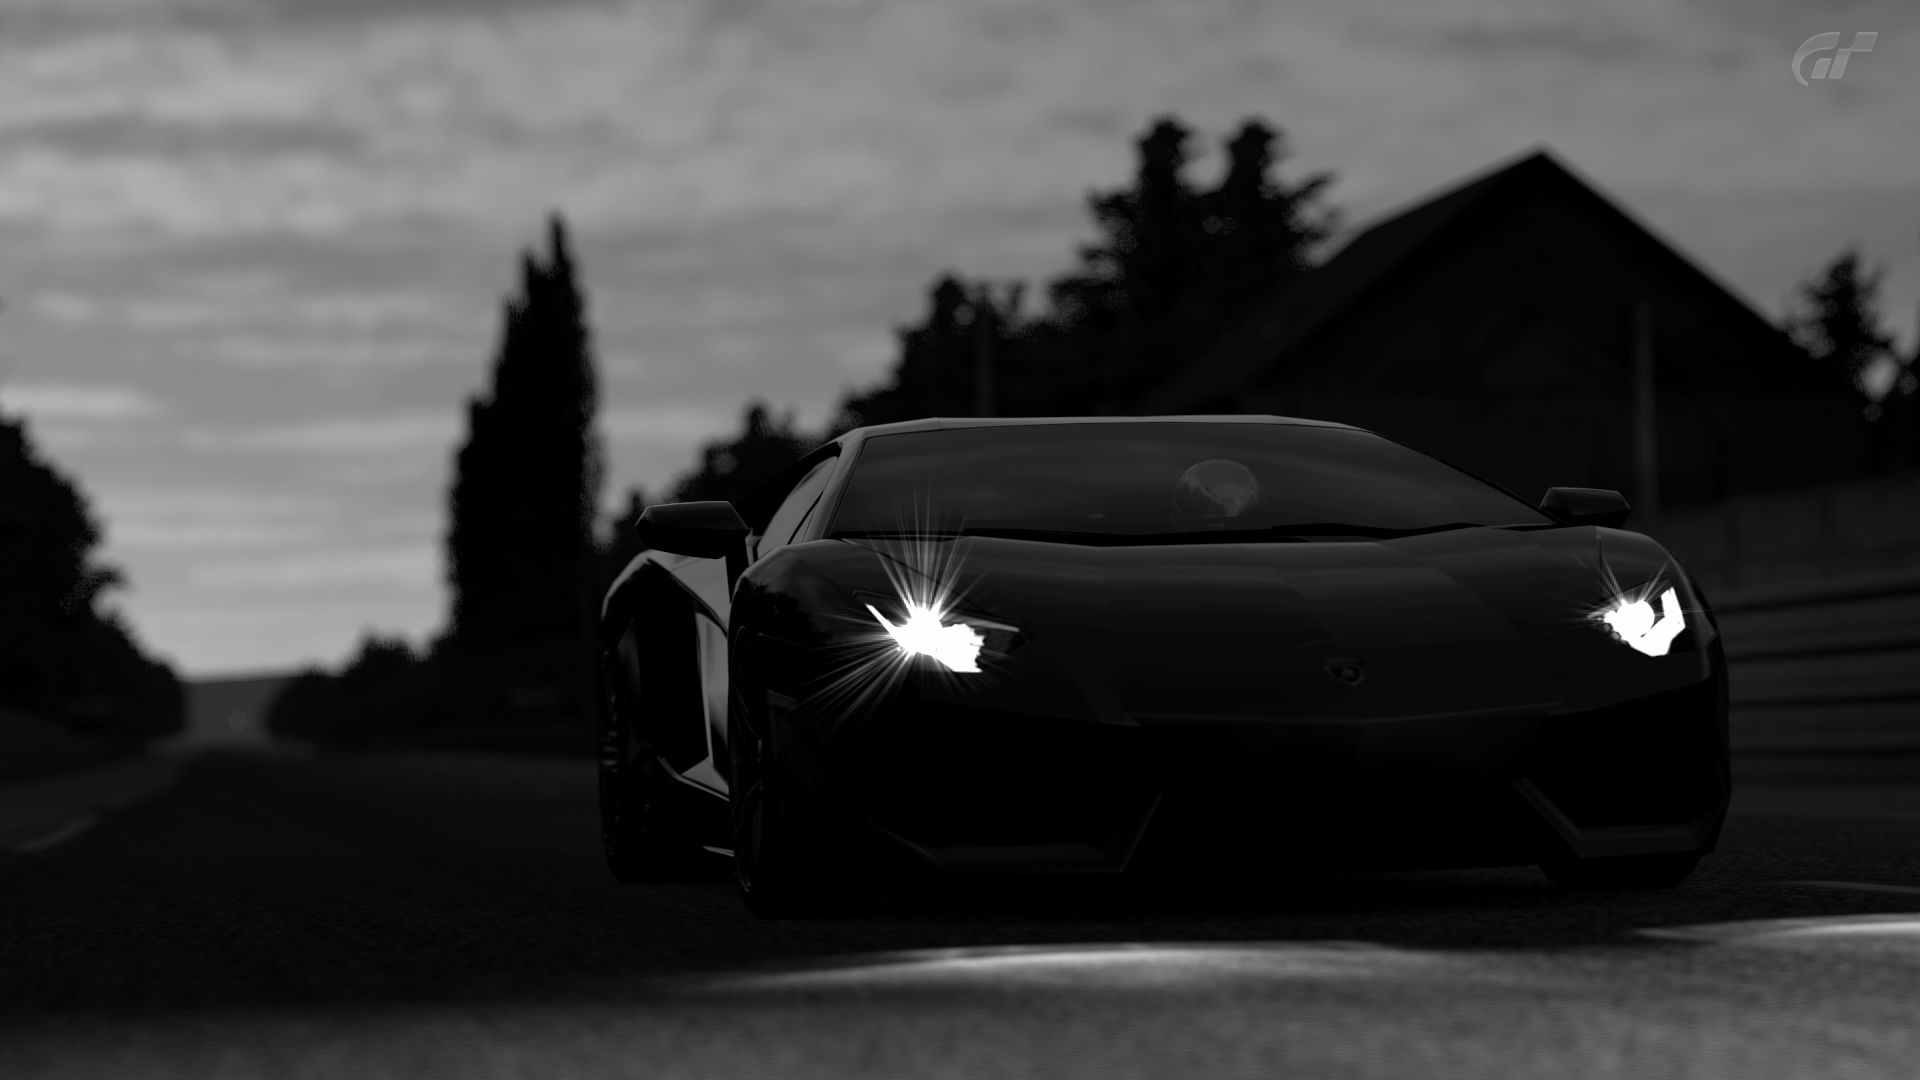 Lambirghini Aventador Wallpaper High Quality Hd Dark Wallpapers Download Wallpaper Hd Dark Wallpaper